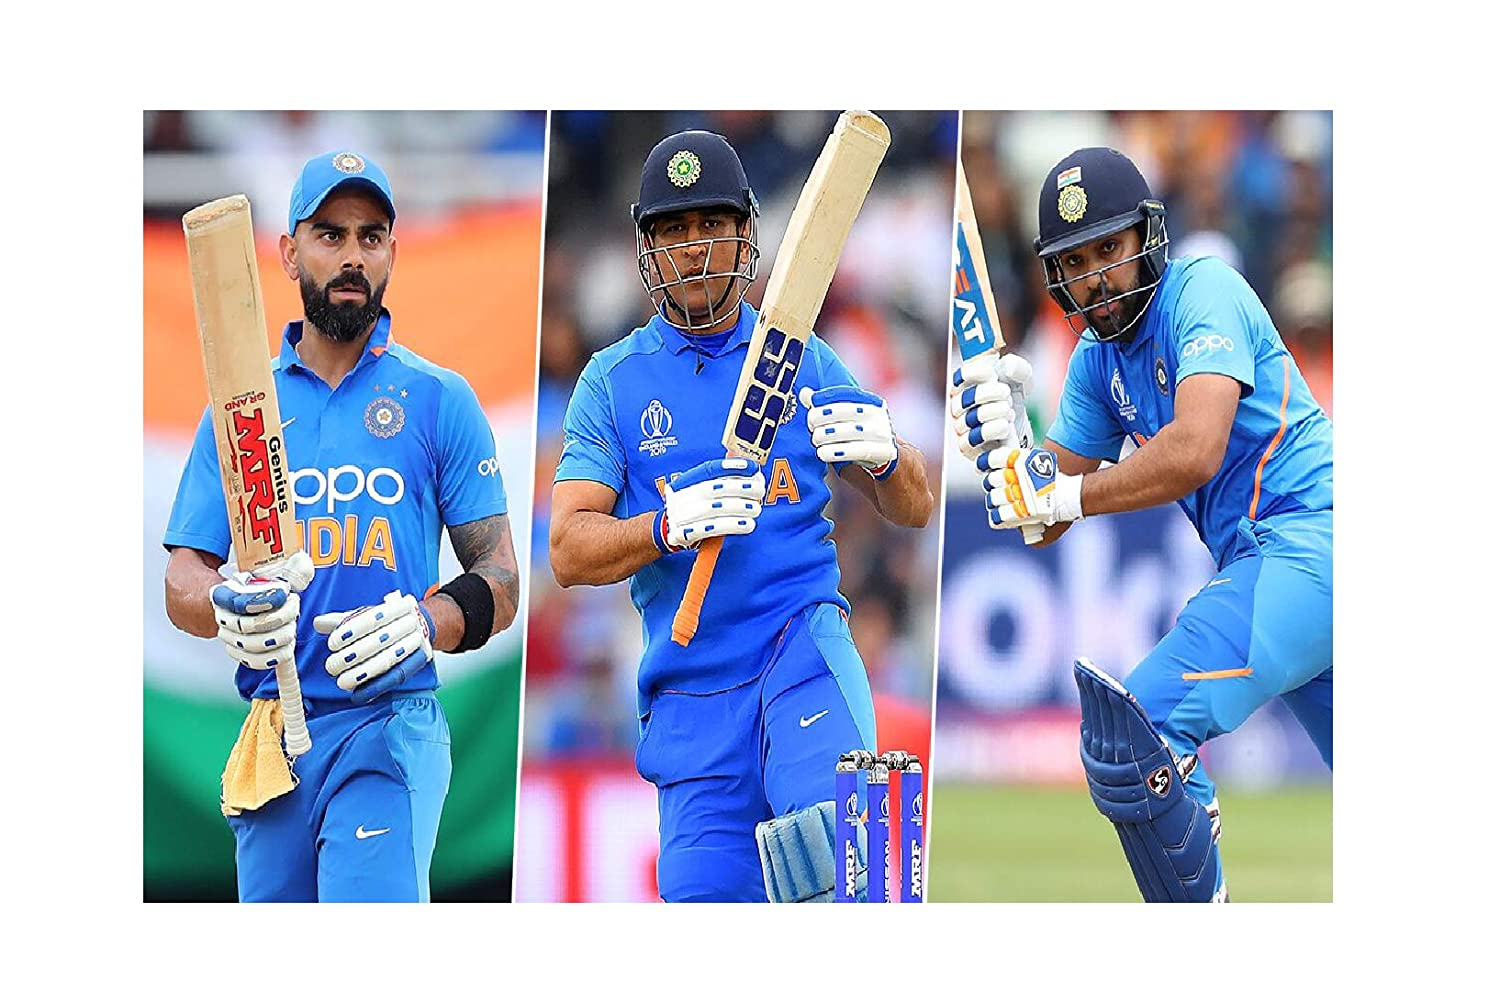 Sign Ever Home Boys And Girls Virat Kohli Ms Dhoni Rohit Sharma India Cricket Players Wall Paper Posters Bedroom Room Office Hd L X H 18 X 12 Inches Multicolour Amazon In Home